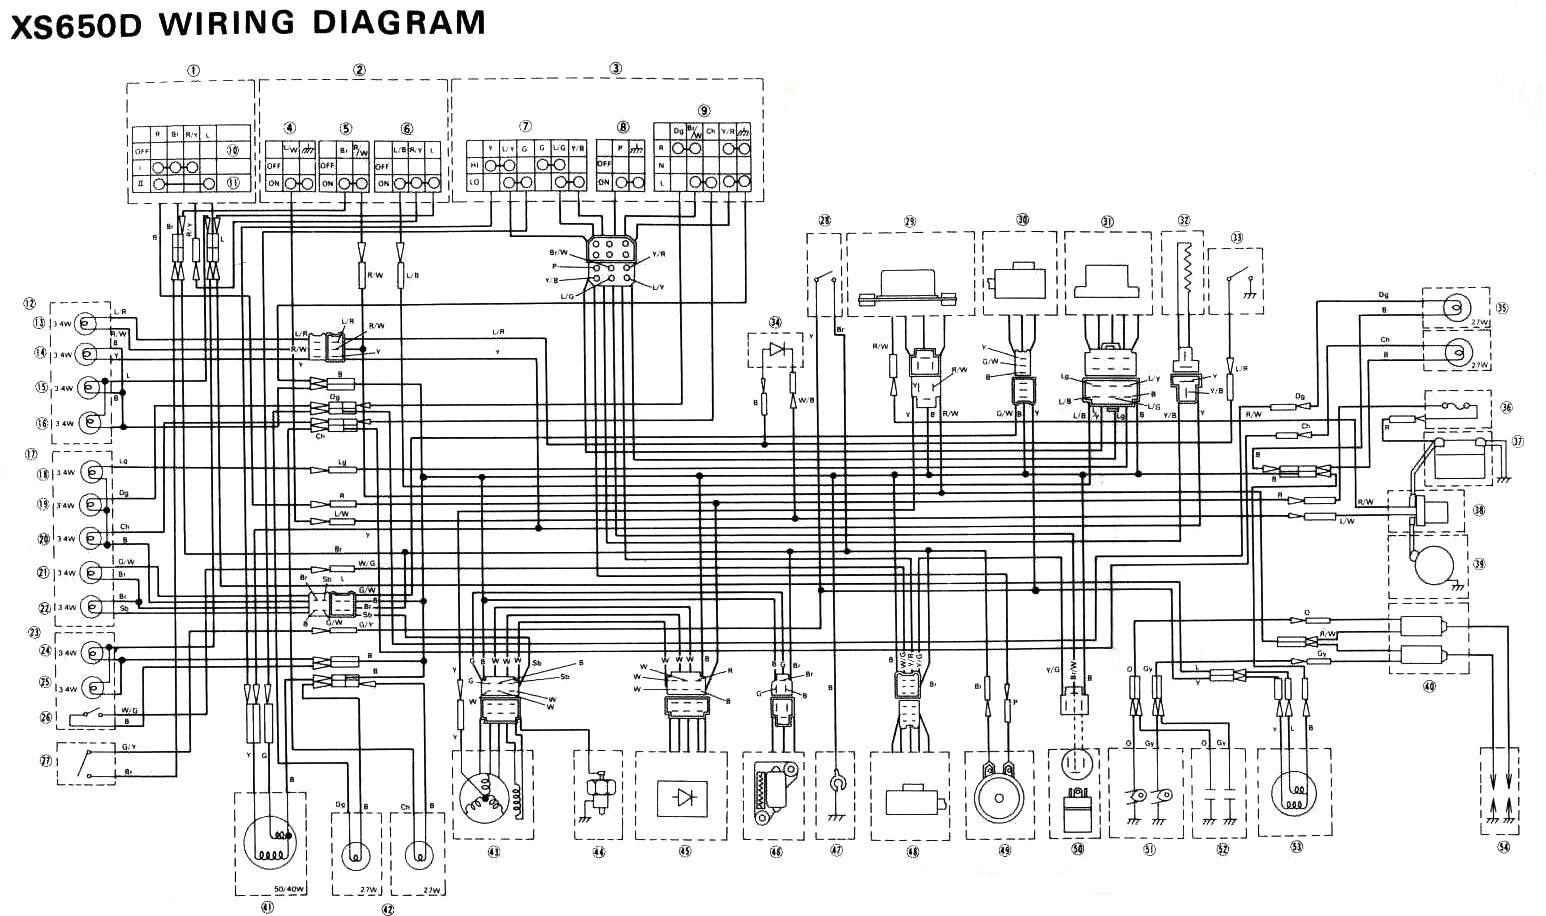 Fj1100 Wiring Diagram - Manual Guide Wiring Diagram • on it 250 wiring diagram, virago wiring diagram, xs360 wiring diagram, xs650 wiring diagram, v-star 650 classic wiring diagram, xs850 wiring diagram, fz700 wiring diagram, xvz1300 wiring diagram, motorcycle wiring diagram, fj1100 wiring diagram, xv535 wiring diagram, yzf r6 wiring diagram, yamaha wiring diagram, qt50 wiring diagram, xj750 wiring diagram, xj550 wiring diagram, xs1100 wiring diagram, ninja 250 wiring diagram, goodall start all wiring diagram, xt350 wiring diagram,